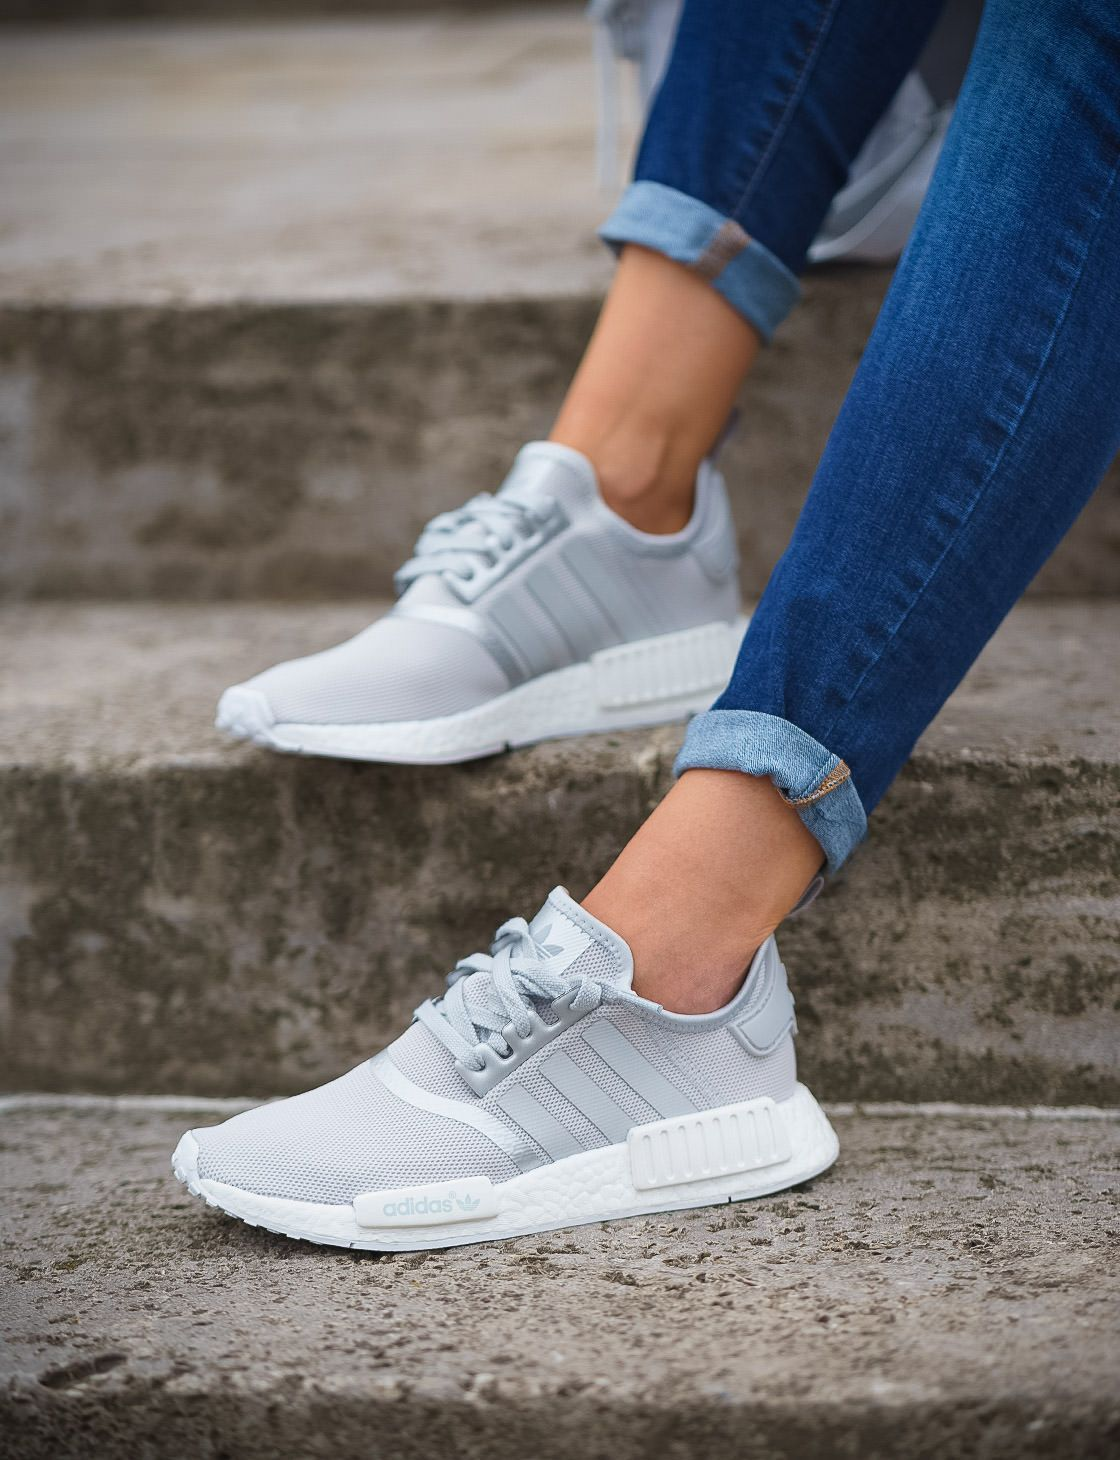 super popular 4665f 74f0a Alexander Wang adidas Rumored to Be Working on a BOOST Sneaker Que es  elliee .... ... When your spying on a girl you like but she sees you